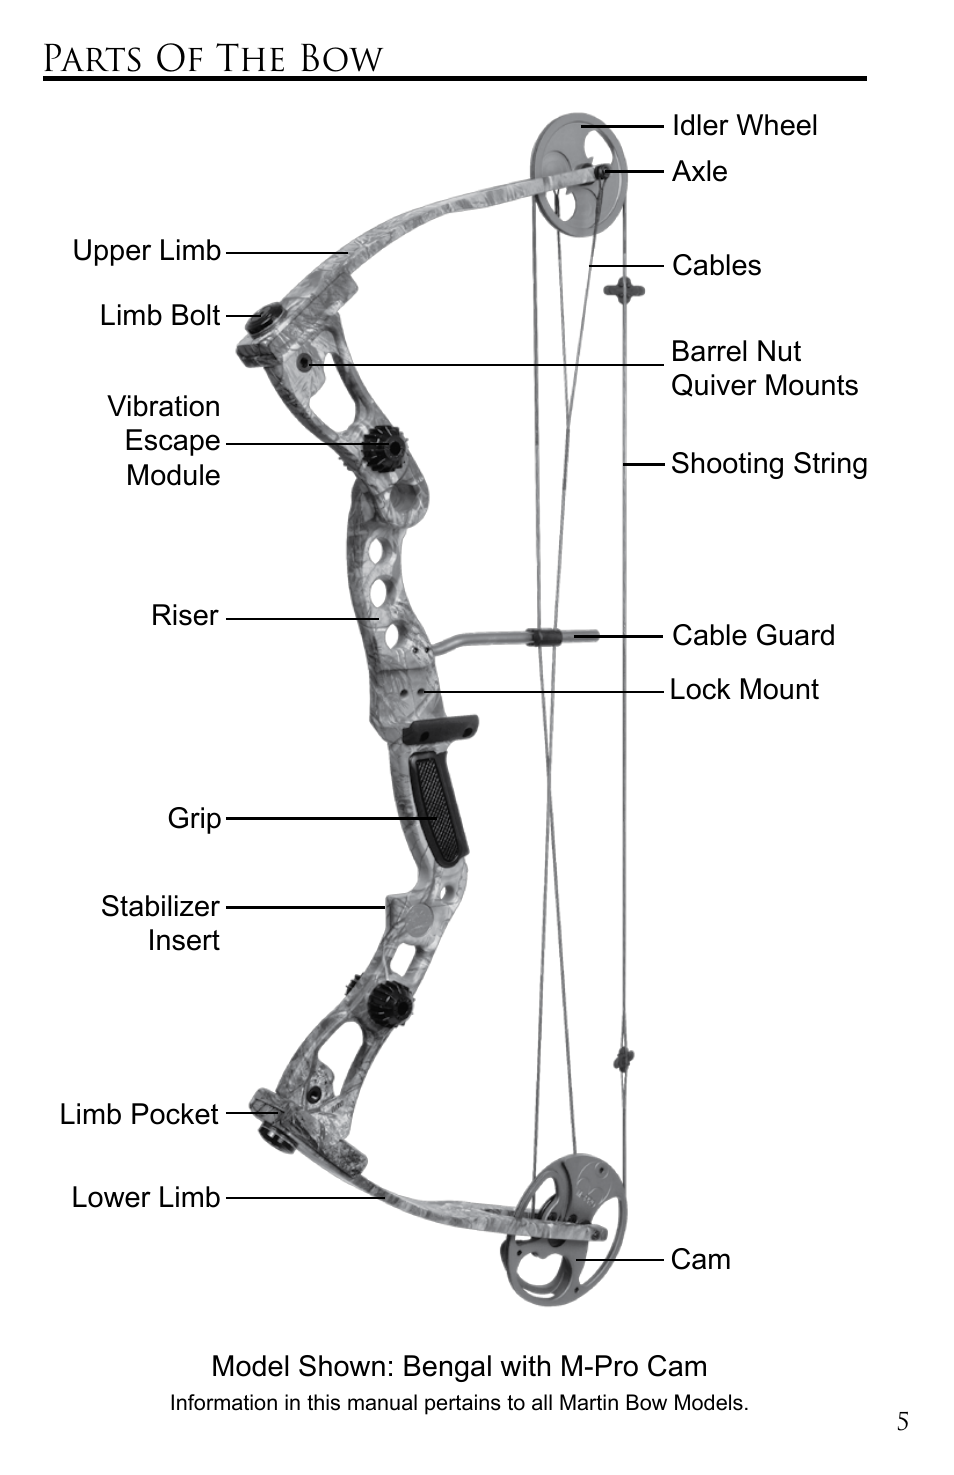 Parts of the bow | Martin Archery Martin Bow User Manual